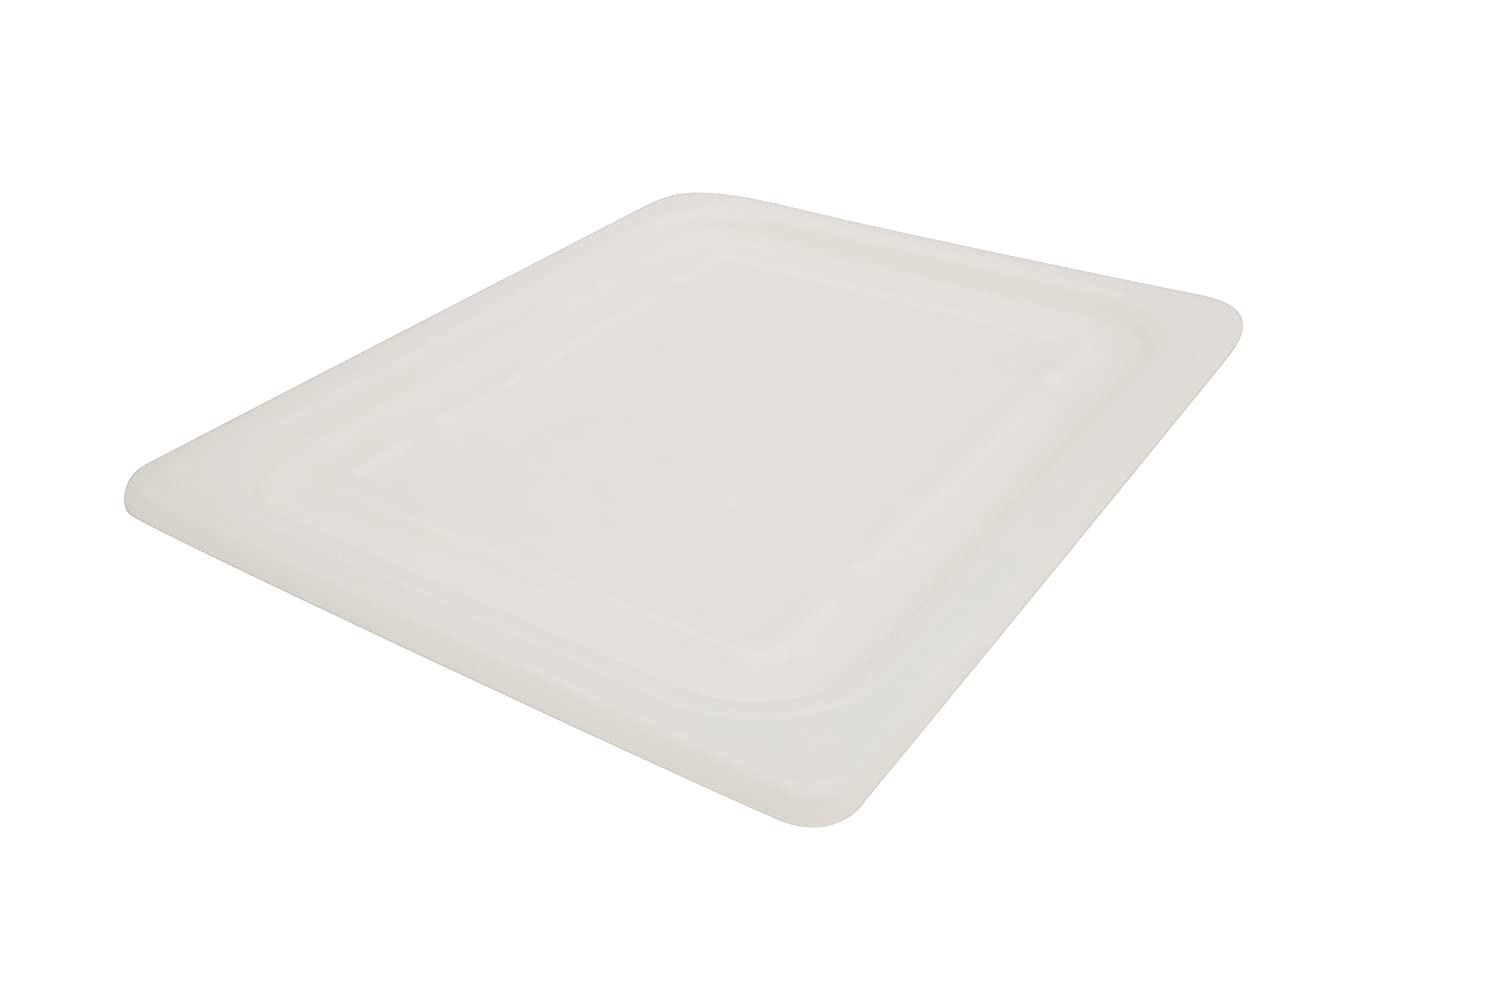 Rubbermaid Commercial Products Cold Food Soft Seal Lid, 1/2 Size, White (FG146P00WHT)